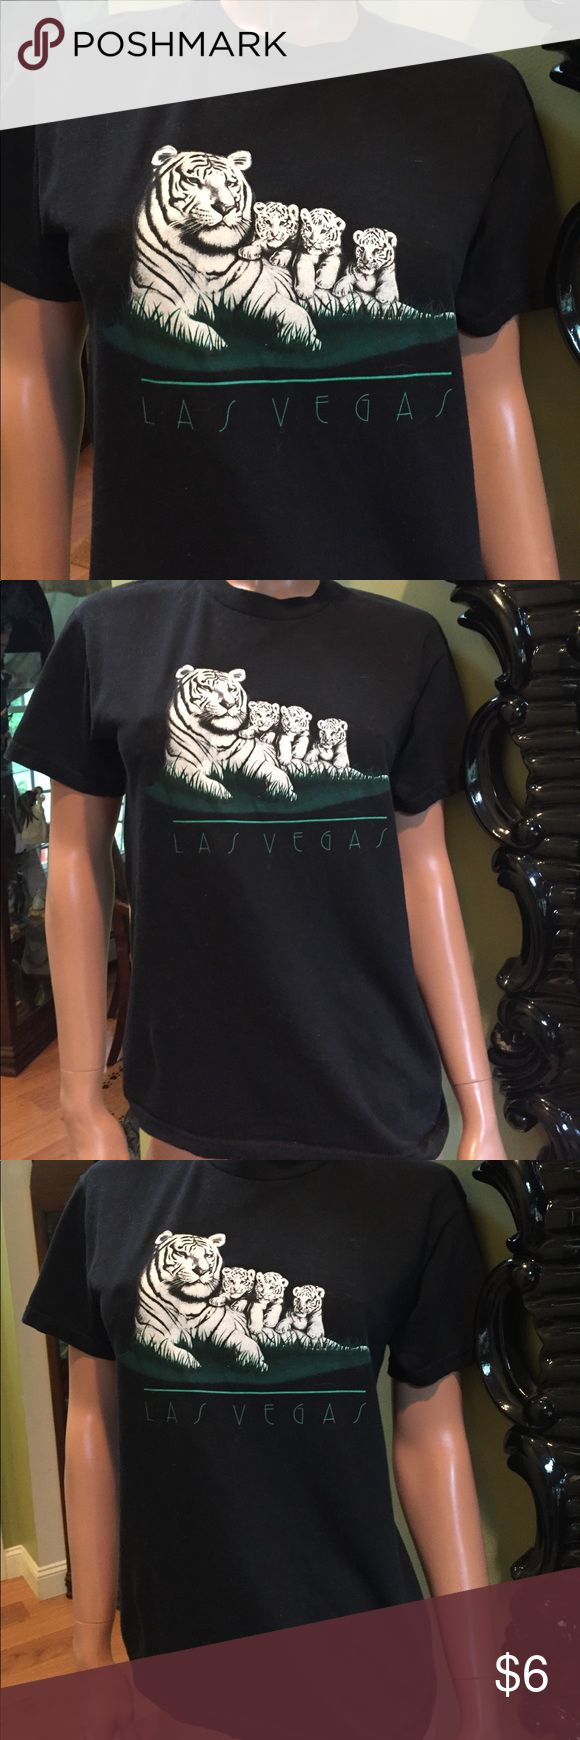 Las Vegas white tigers & cubs  black t shirt S Las Vegas white tiger and cubs t shirt this is a kids shirt marked L 14-16 but will fit a small woman so I listed it that way. Not forever 21 but listed here for visibility good used condition- still very black Forever 21 Tops Tees - Short Sleeve